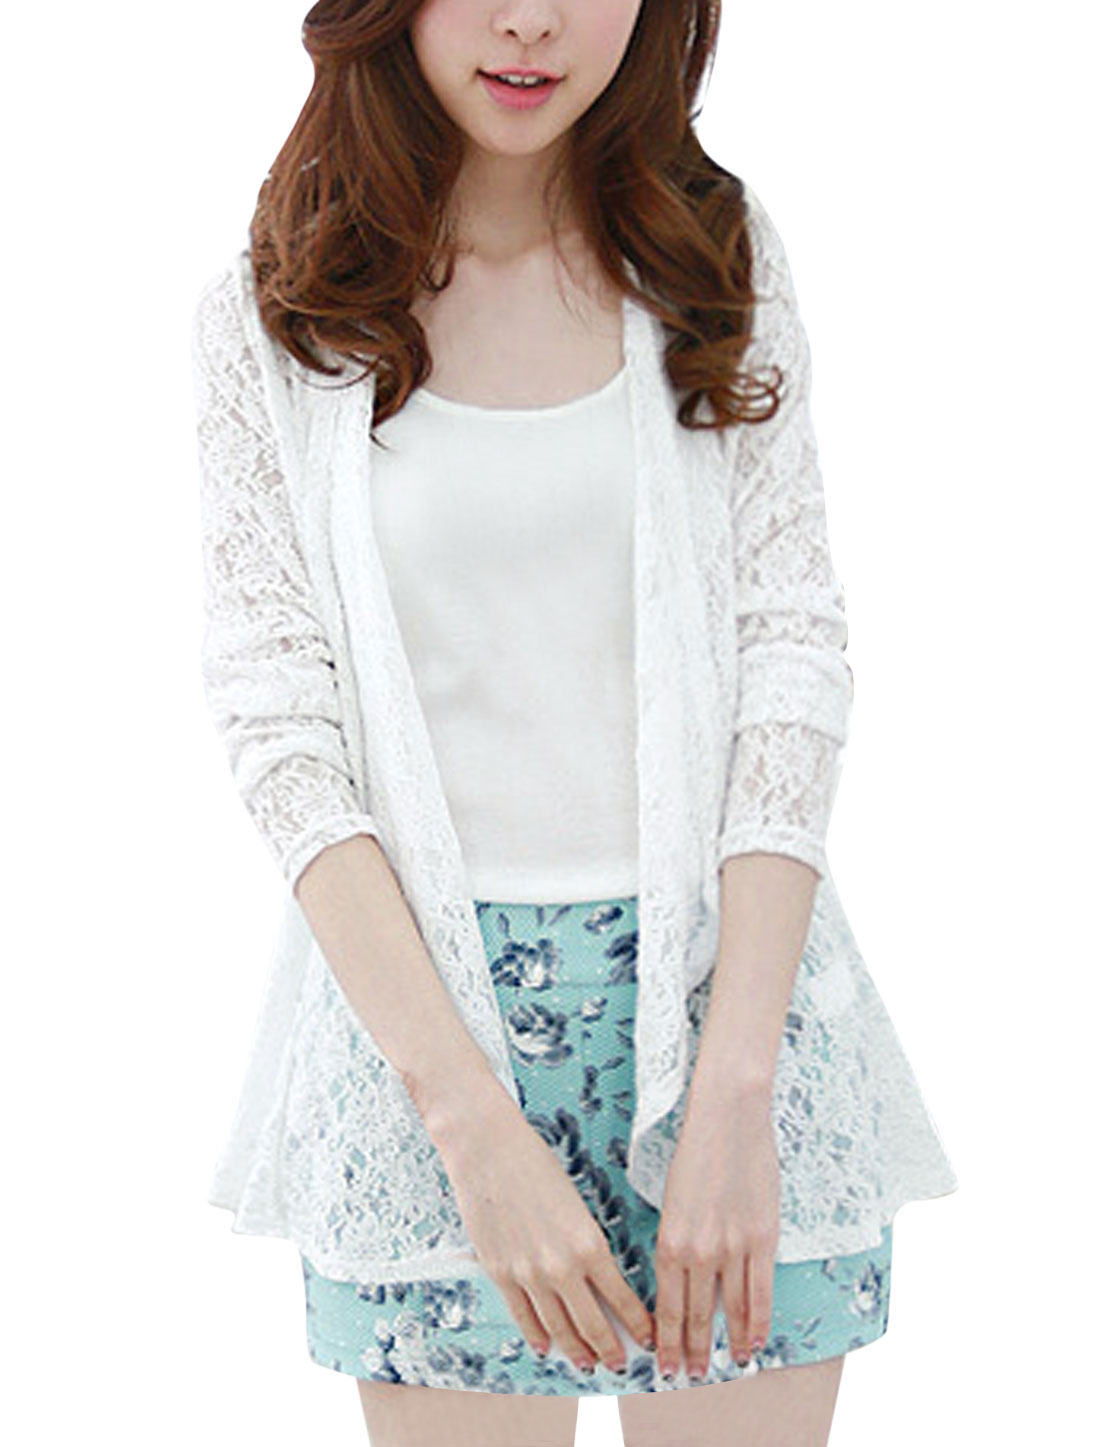 Lady Long Sleeve Semi Sheer Elegant Lace Cardigan White XS